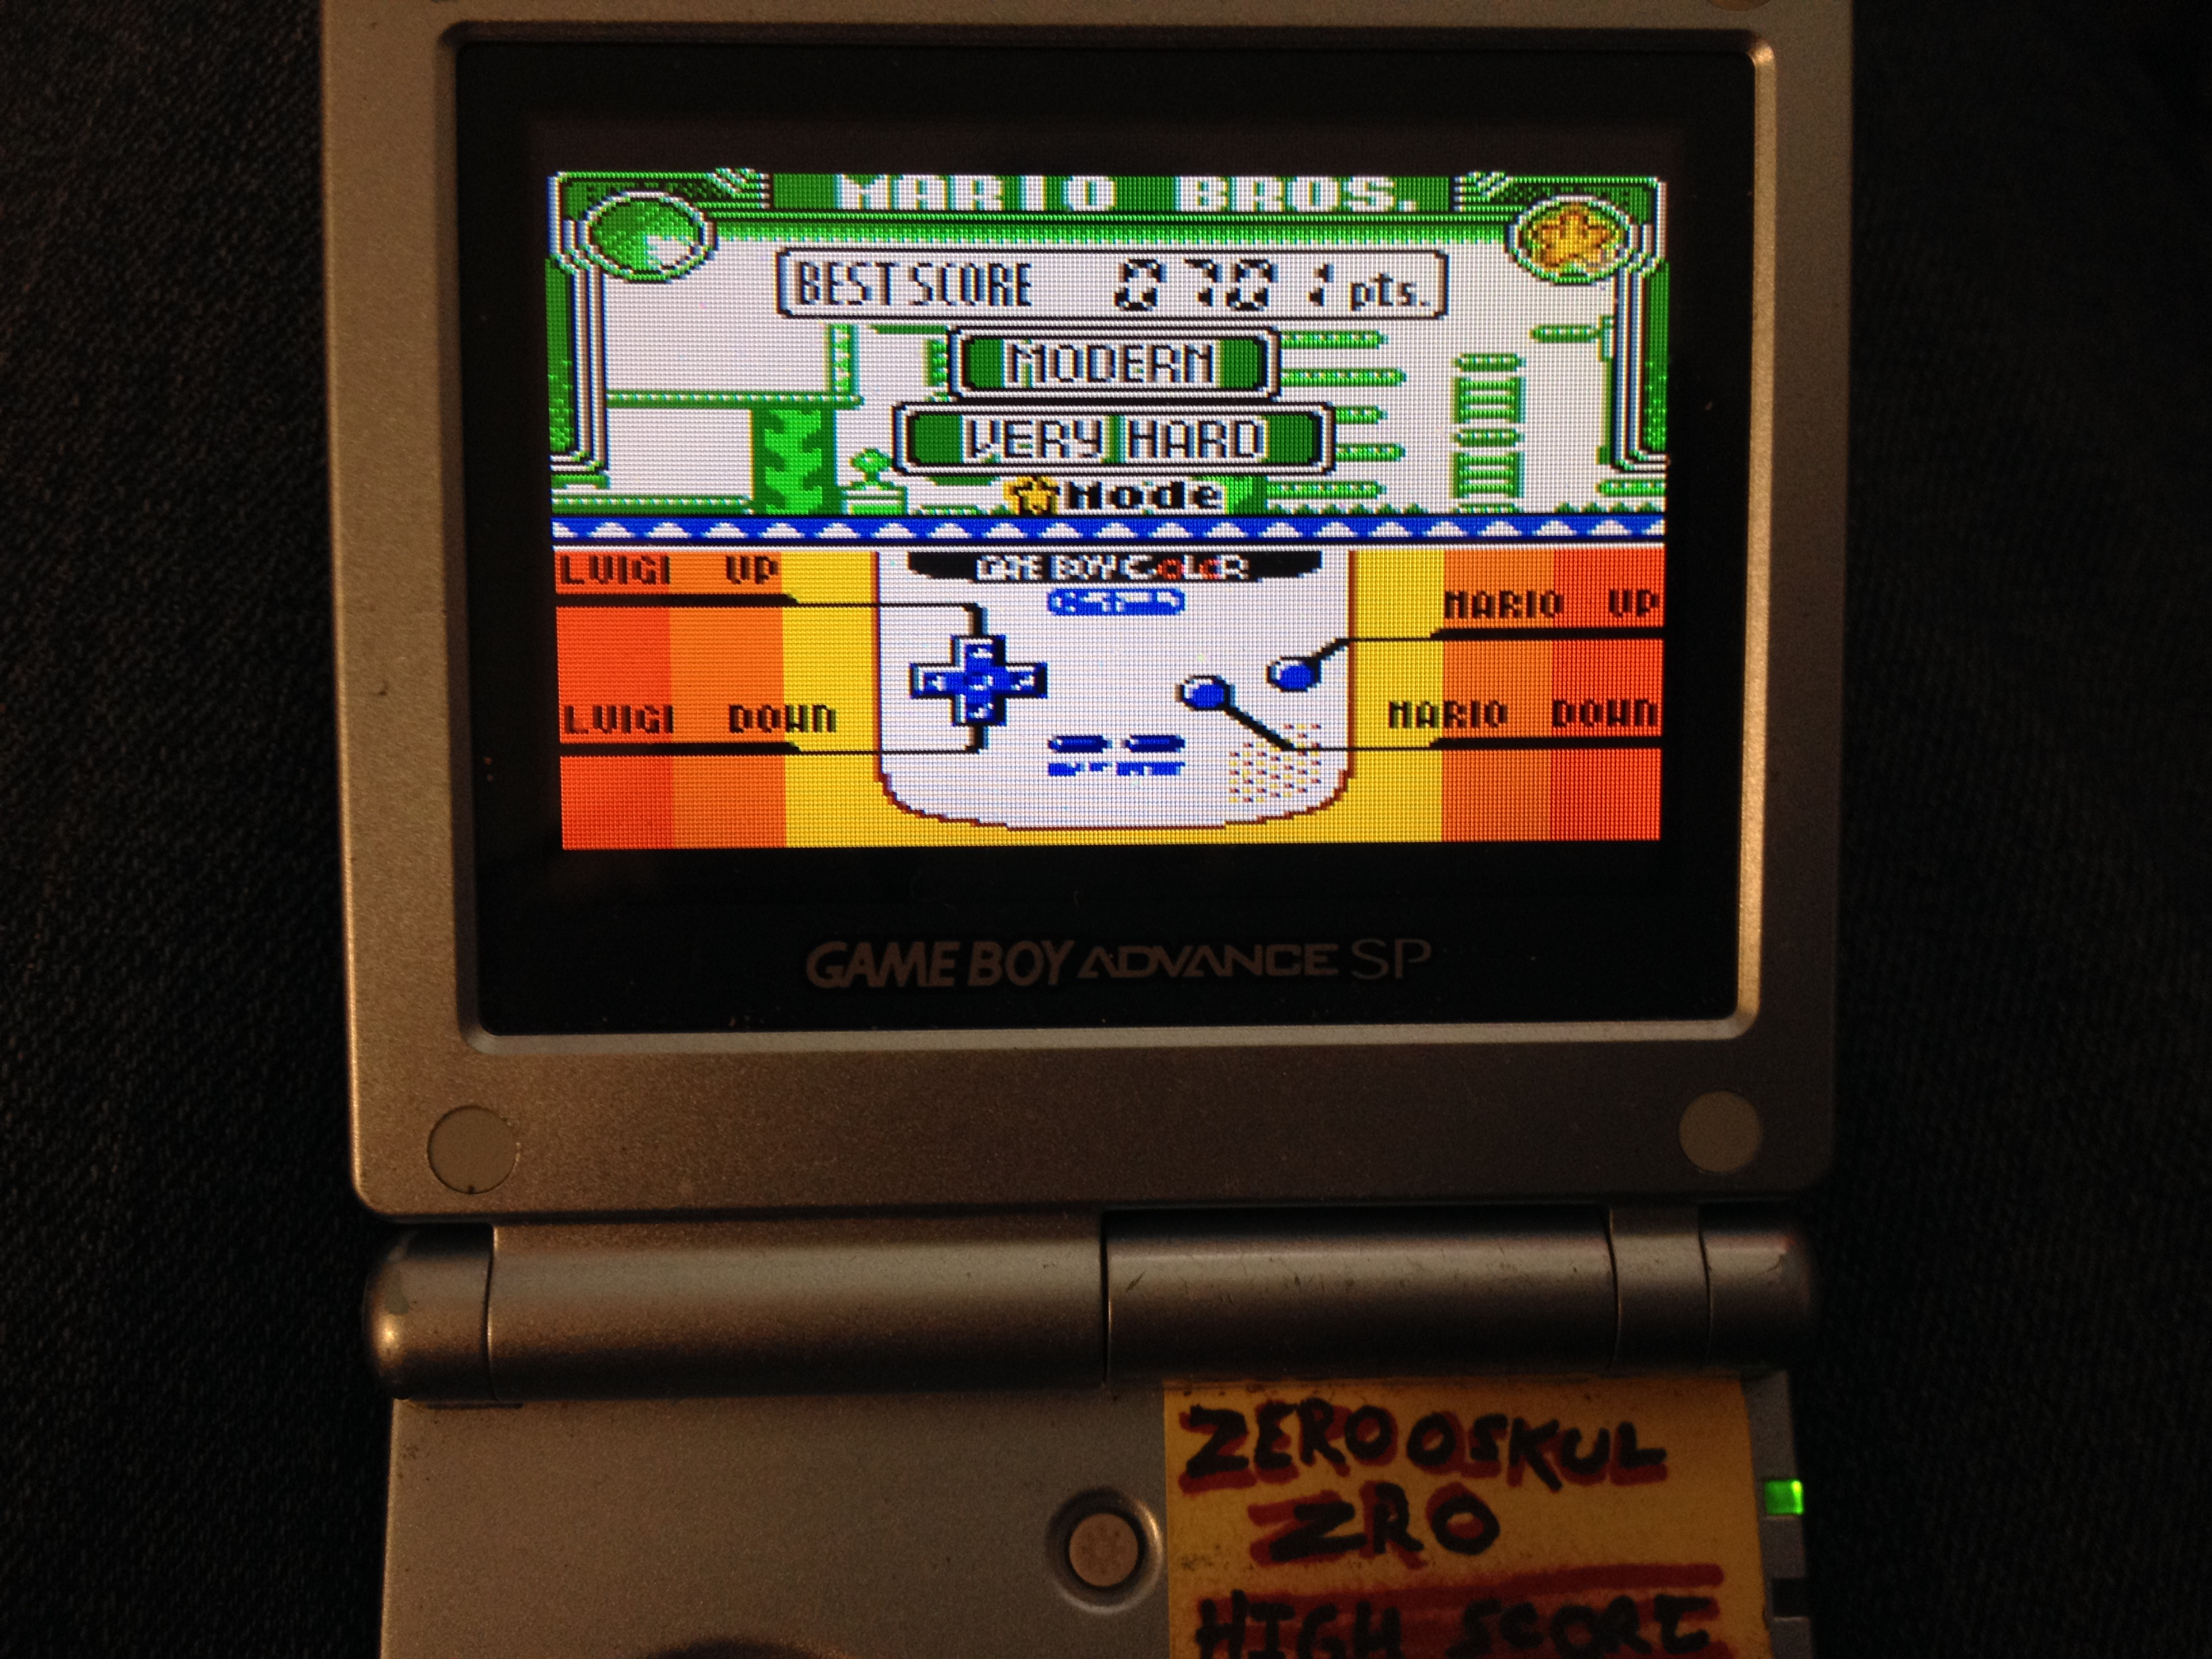 Game & Watch Gallery 3: Mario Bros [Modern: Very Hard] 701 points